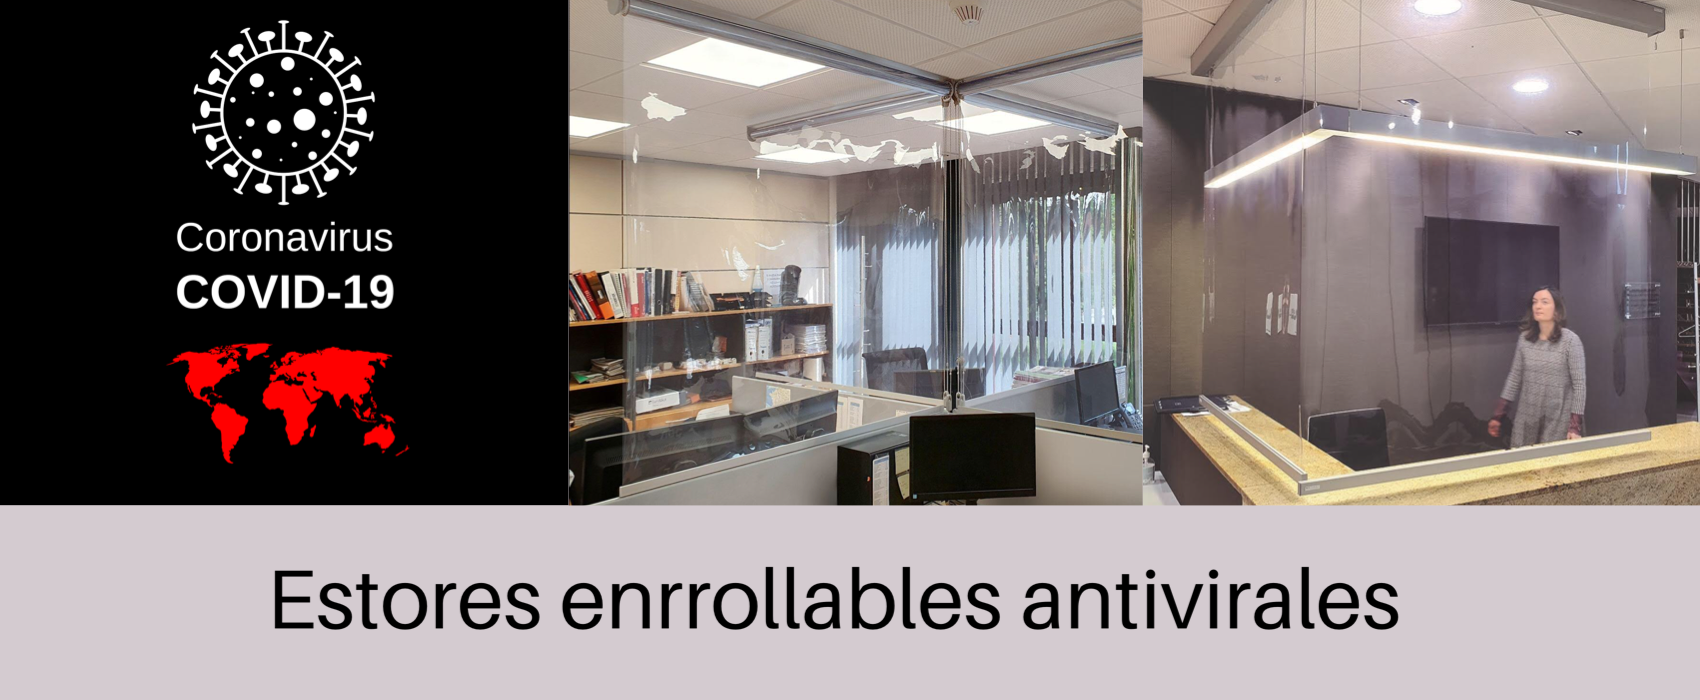 estores enrrollables antivirales